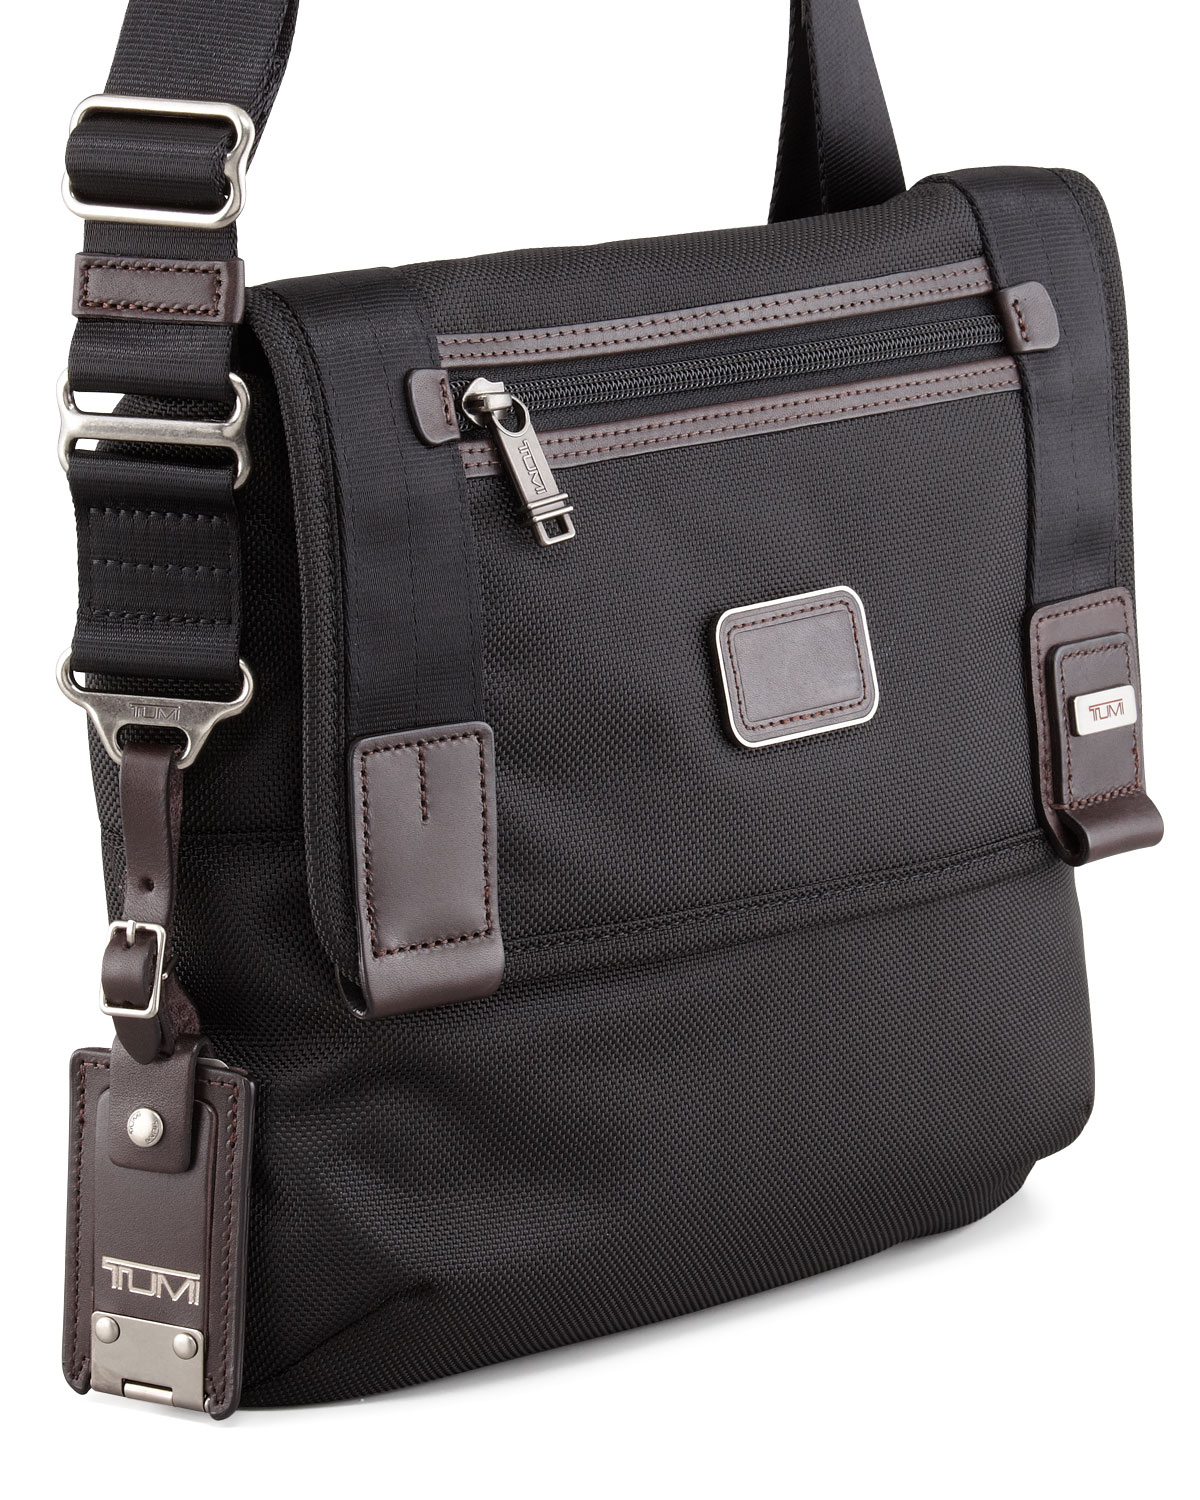 Tumi Hickory Mini Messenger Bag in Black | Lyst